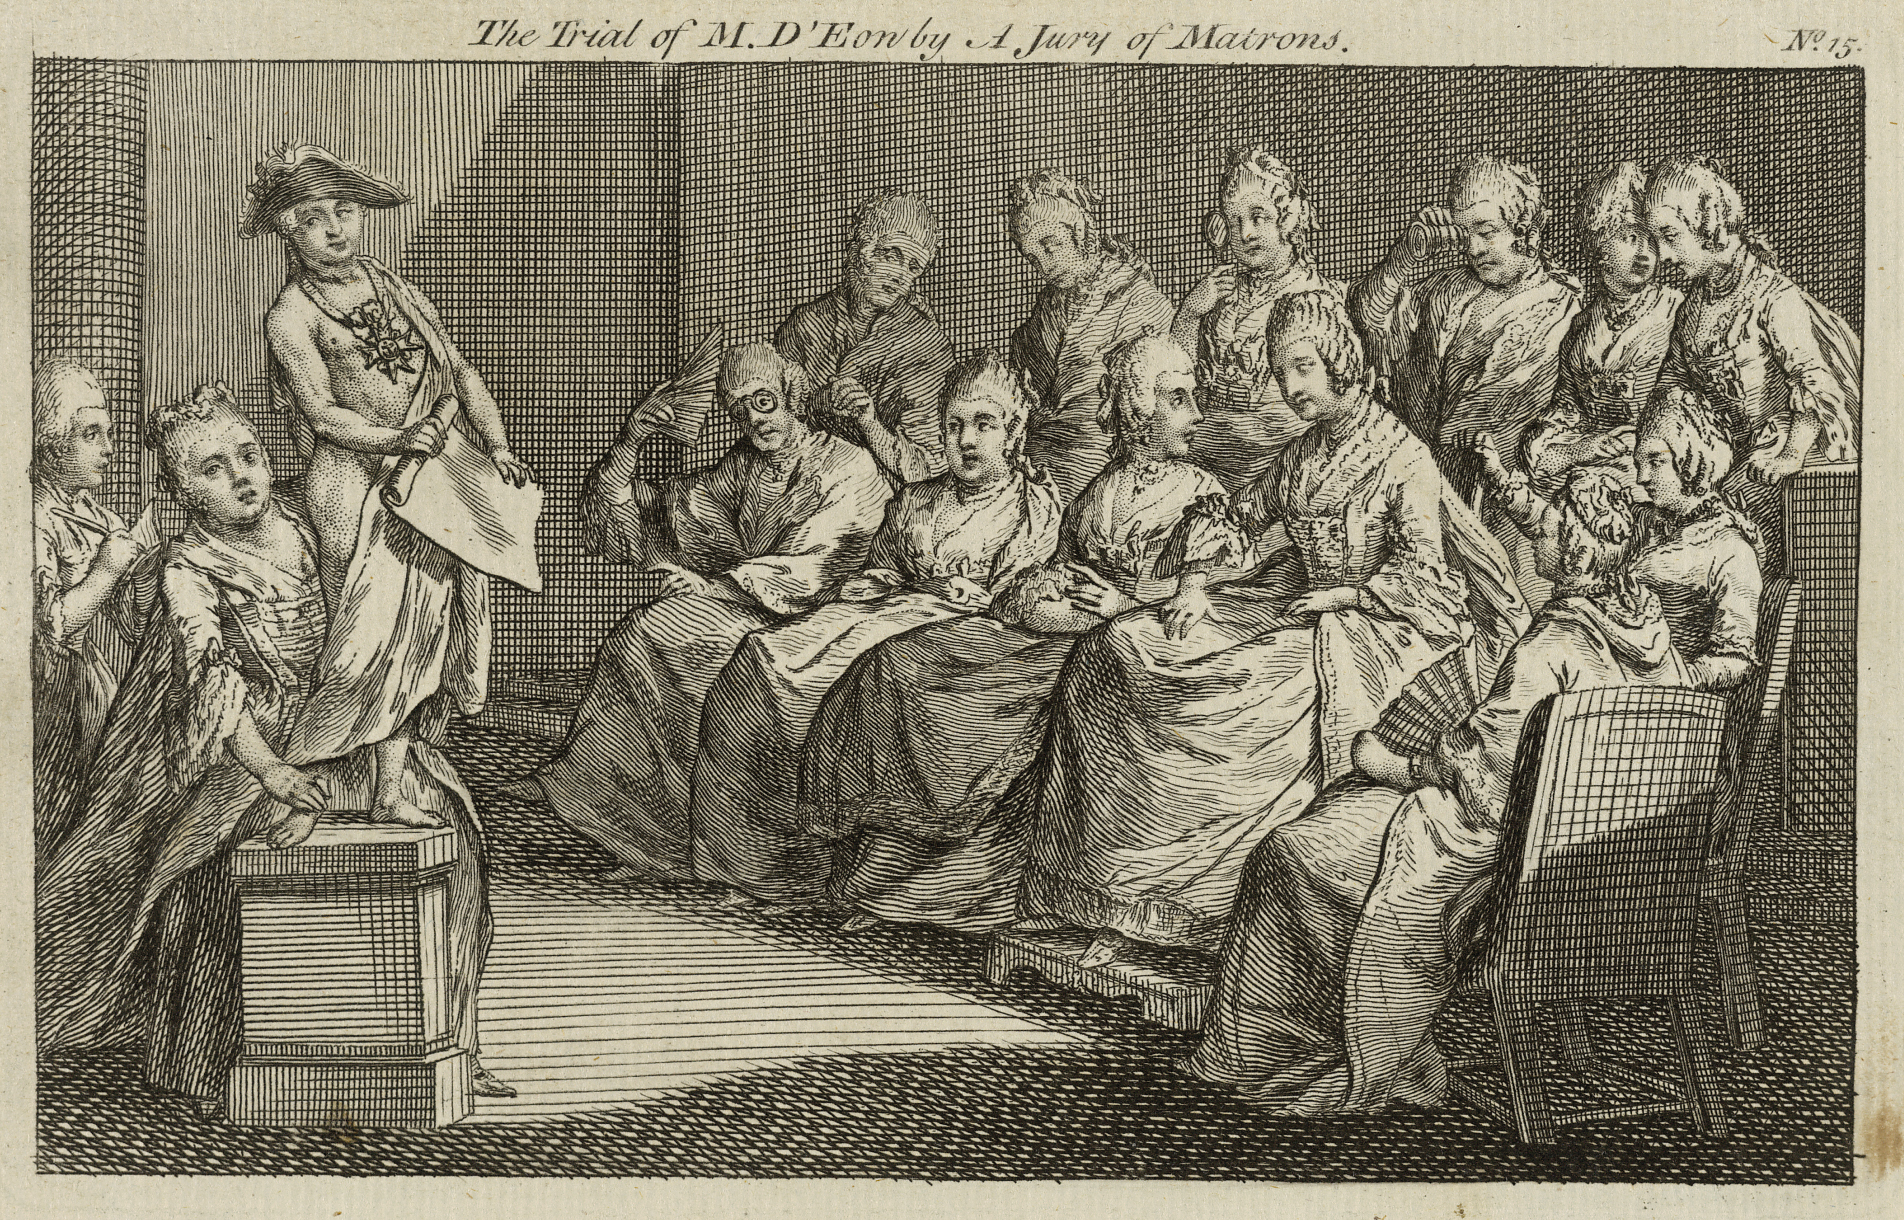 A print depicting the trial of the Chevalier D'Eon, who is shown standing on a plinth to the left. A jury of matrons are seated to the right.